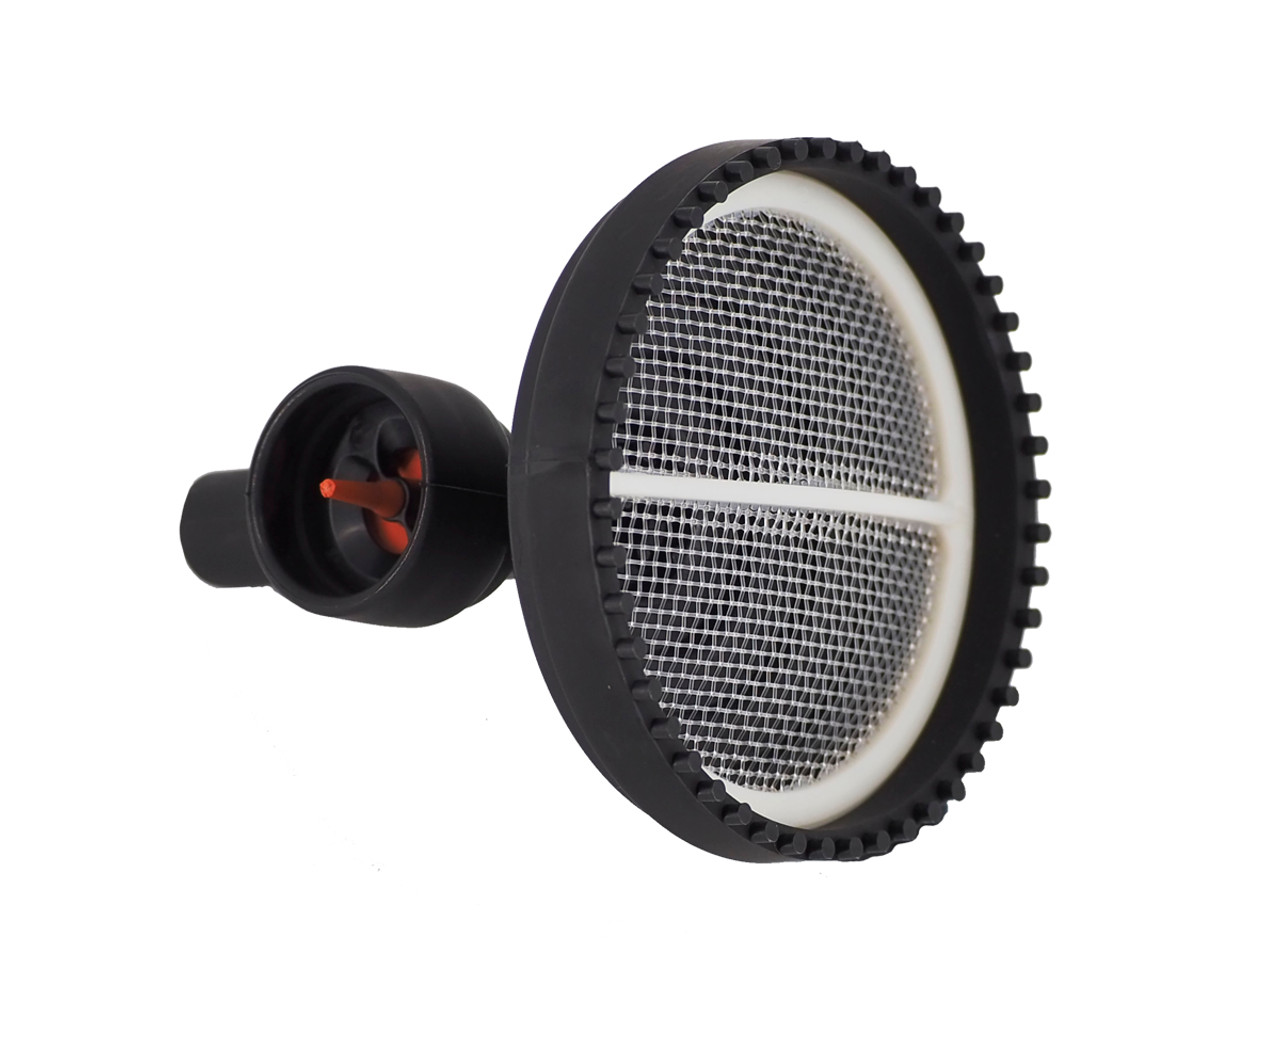 F-350 Set of 2 7.3L Fuel Pick UP Filter Strainer Screen fits 99-03 Ford F-250